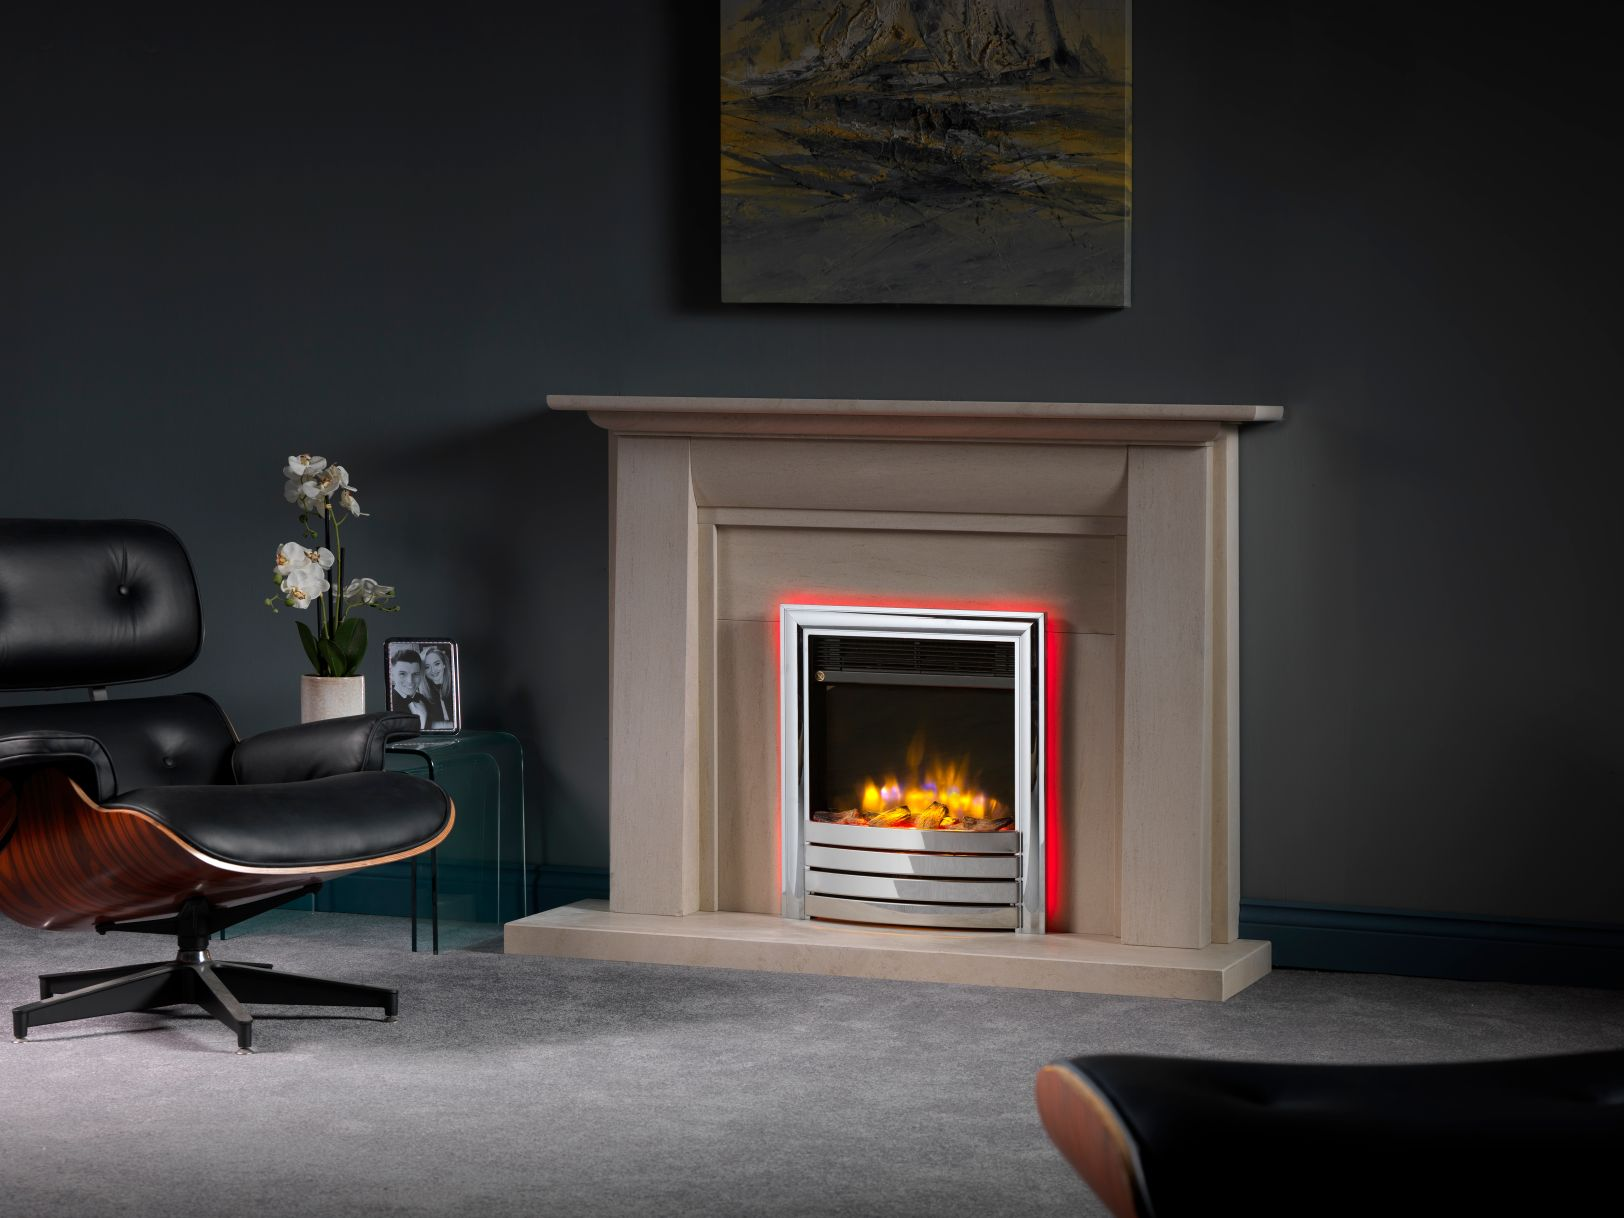 4D Ecoflame Electric Fire in Stokesay Electric Fireplace Suite with Lights